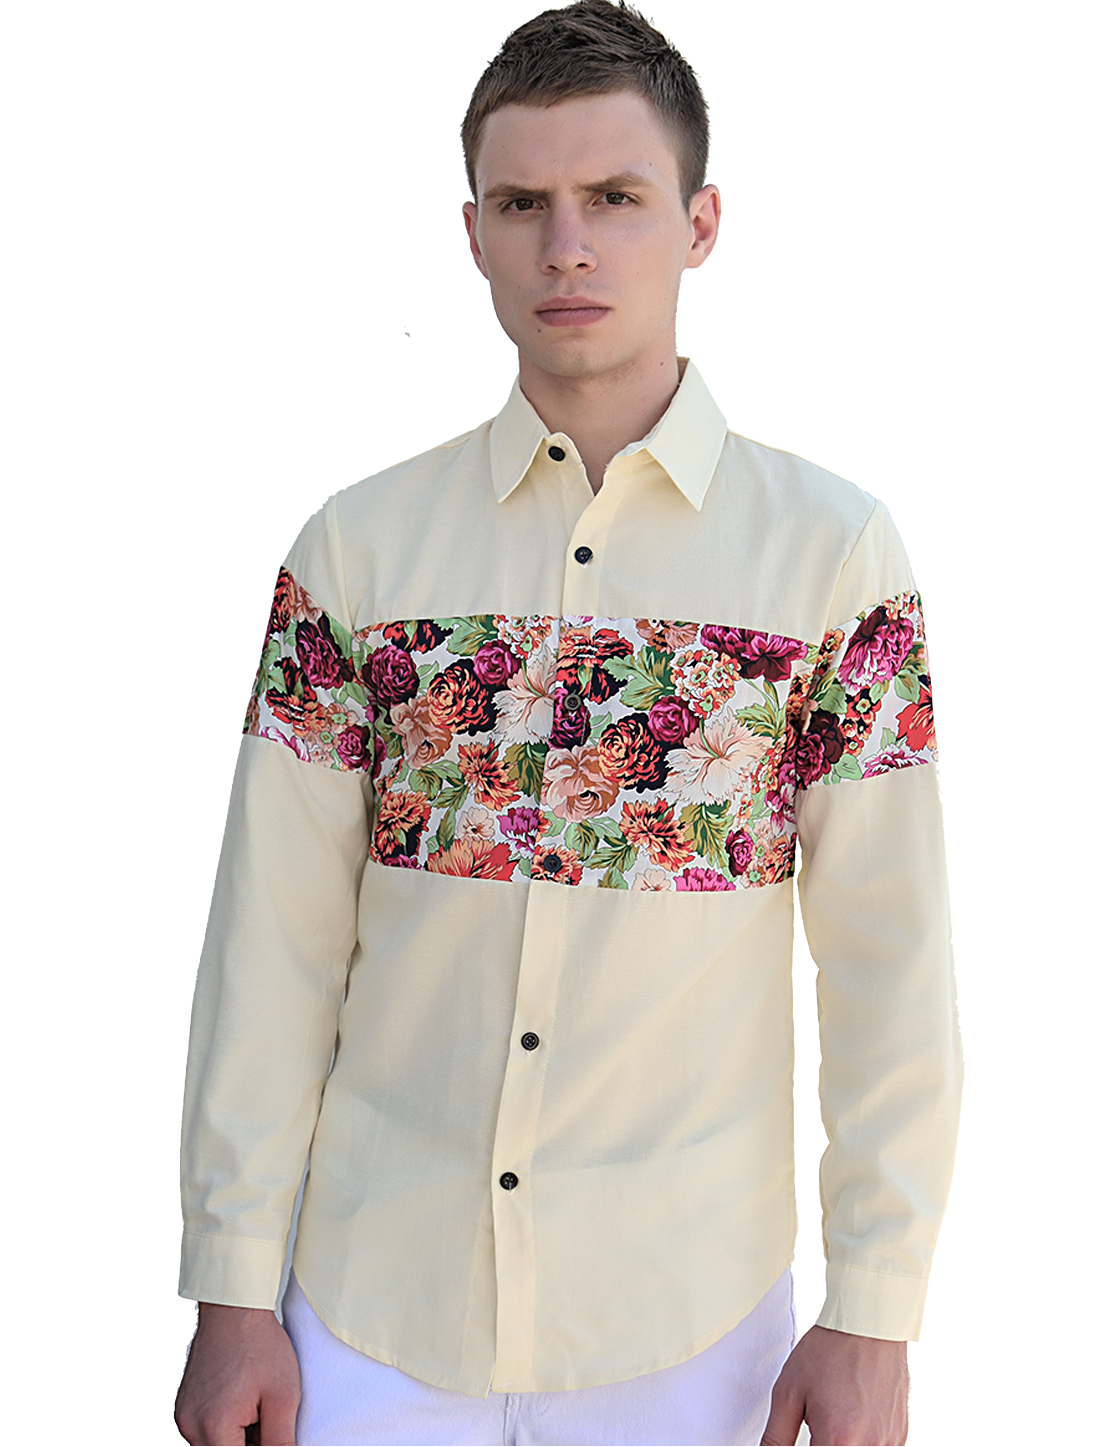 Men Long Sleeves Contrast Floral Print Buttoned Cuffs Stylish Shirt Yellow M